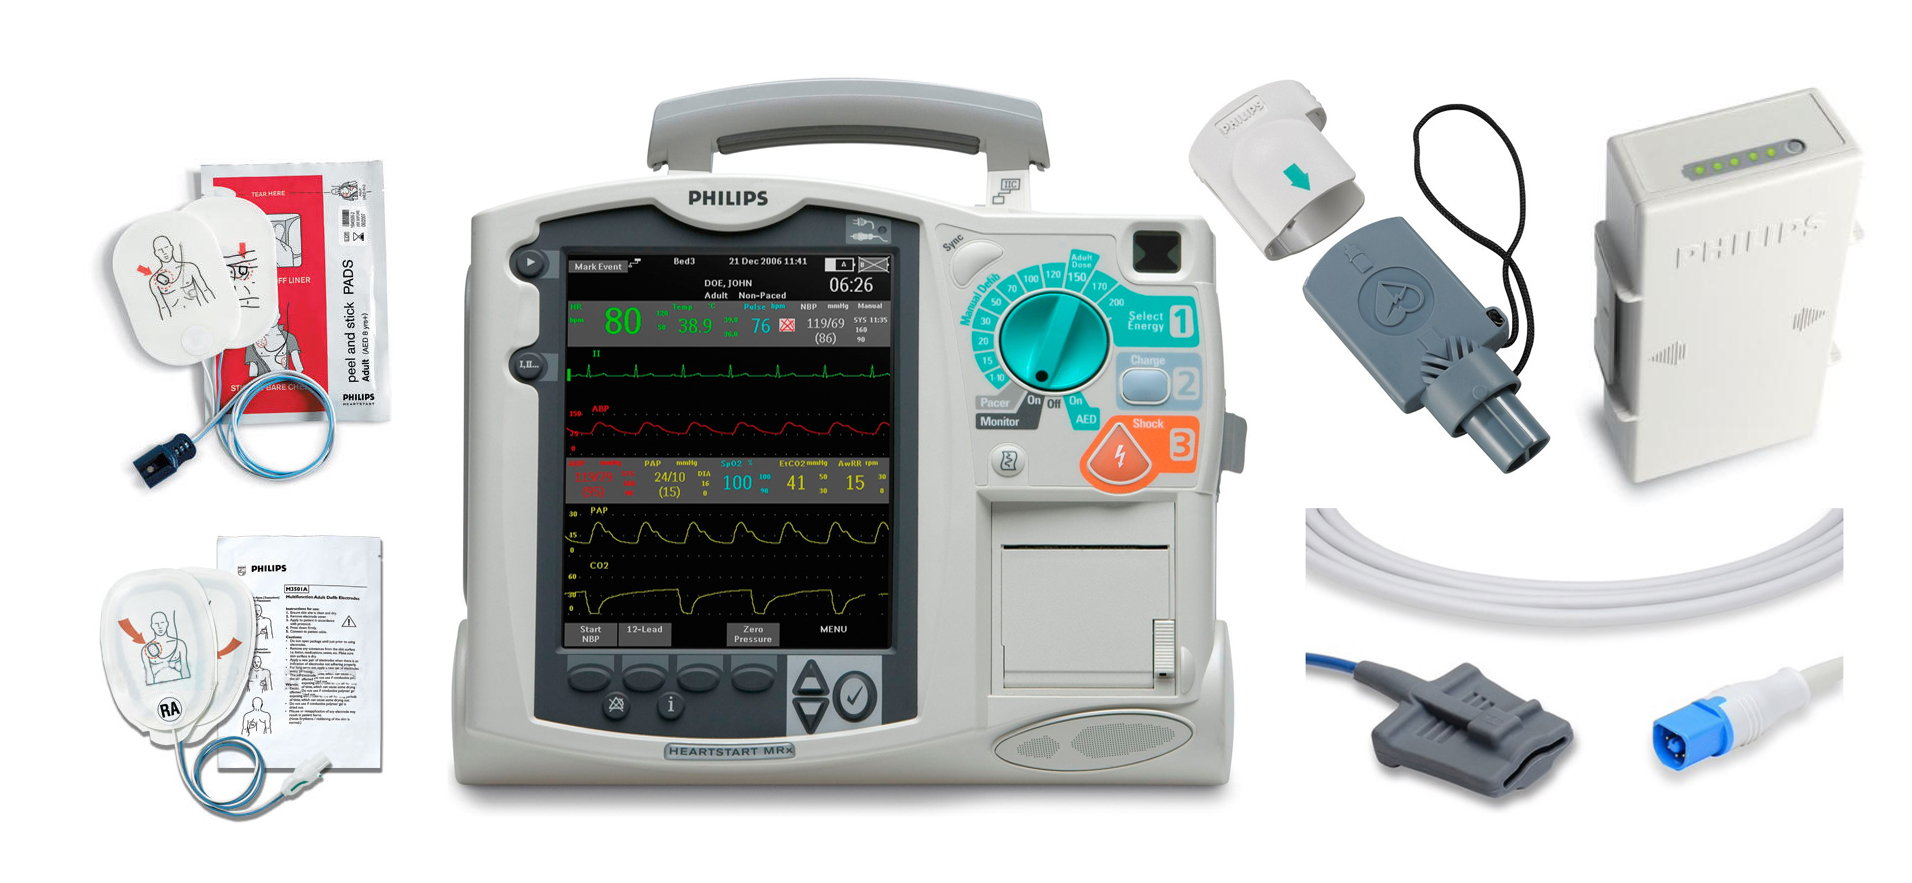 philips-heartstart-mrx-monitor-defibrillator-call-888-823-6967-for-configuration-pricing-42604.1516307669.jpg